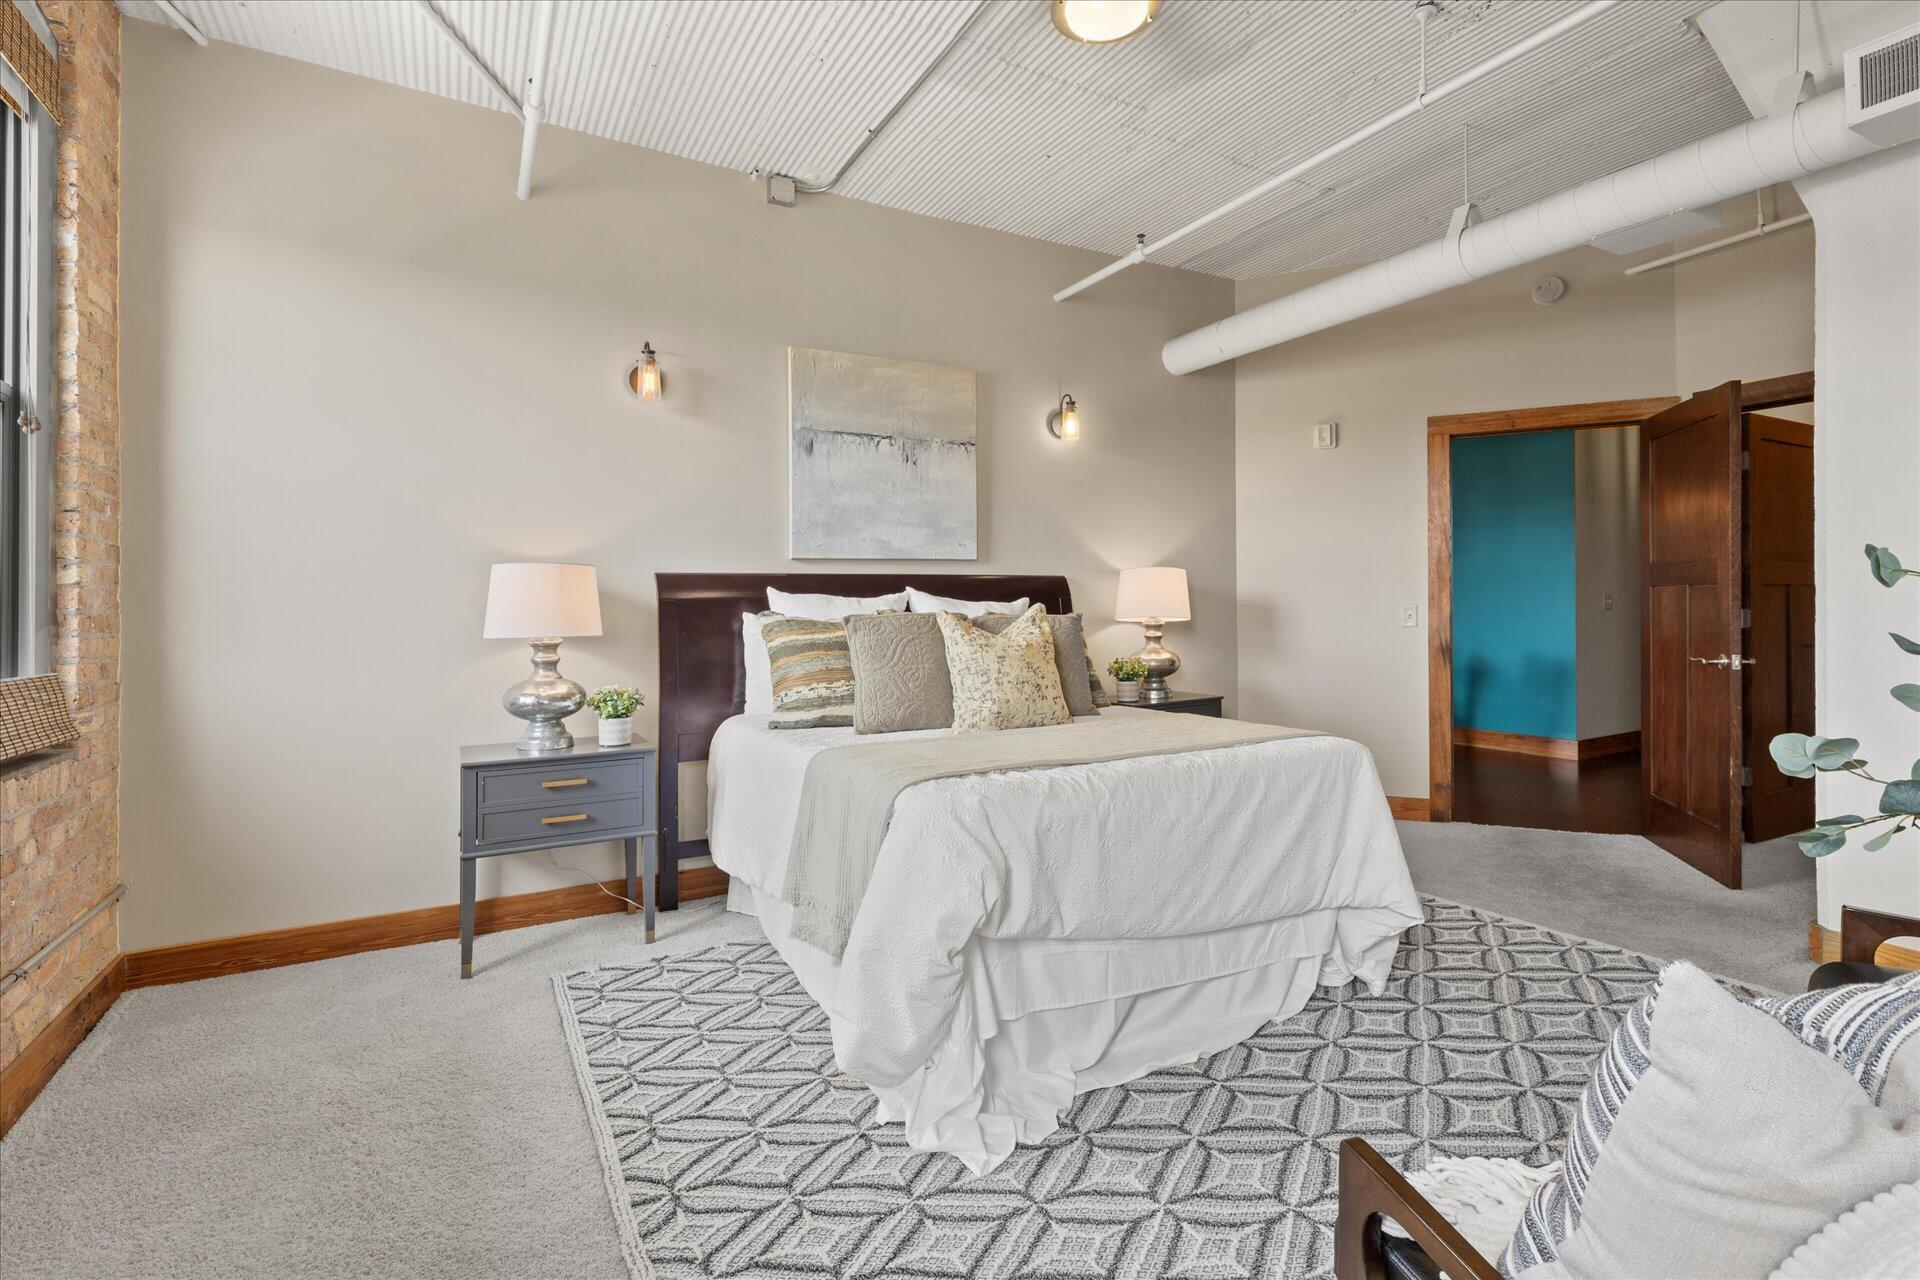 Spacious bedroom with neutral colors